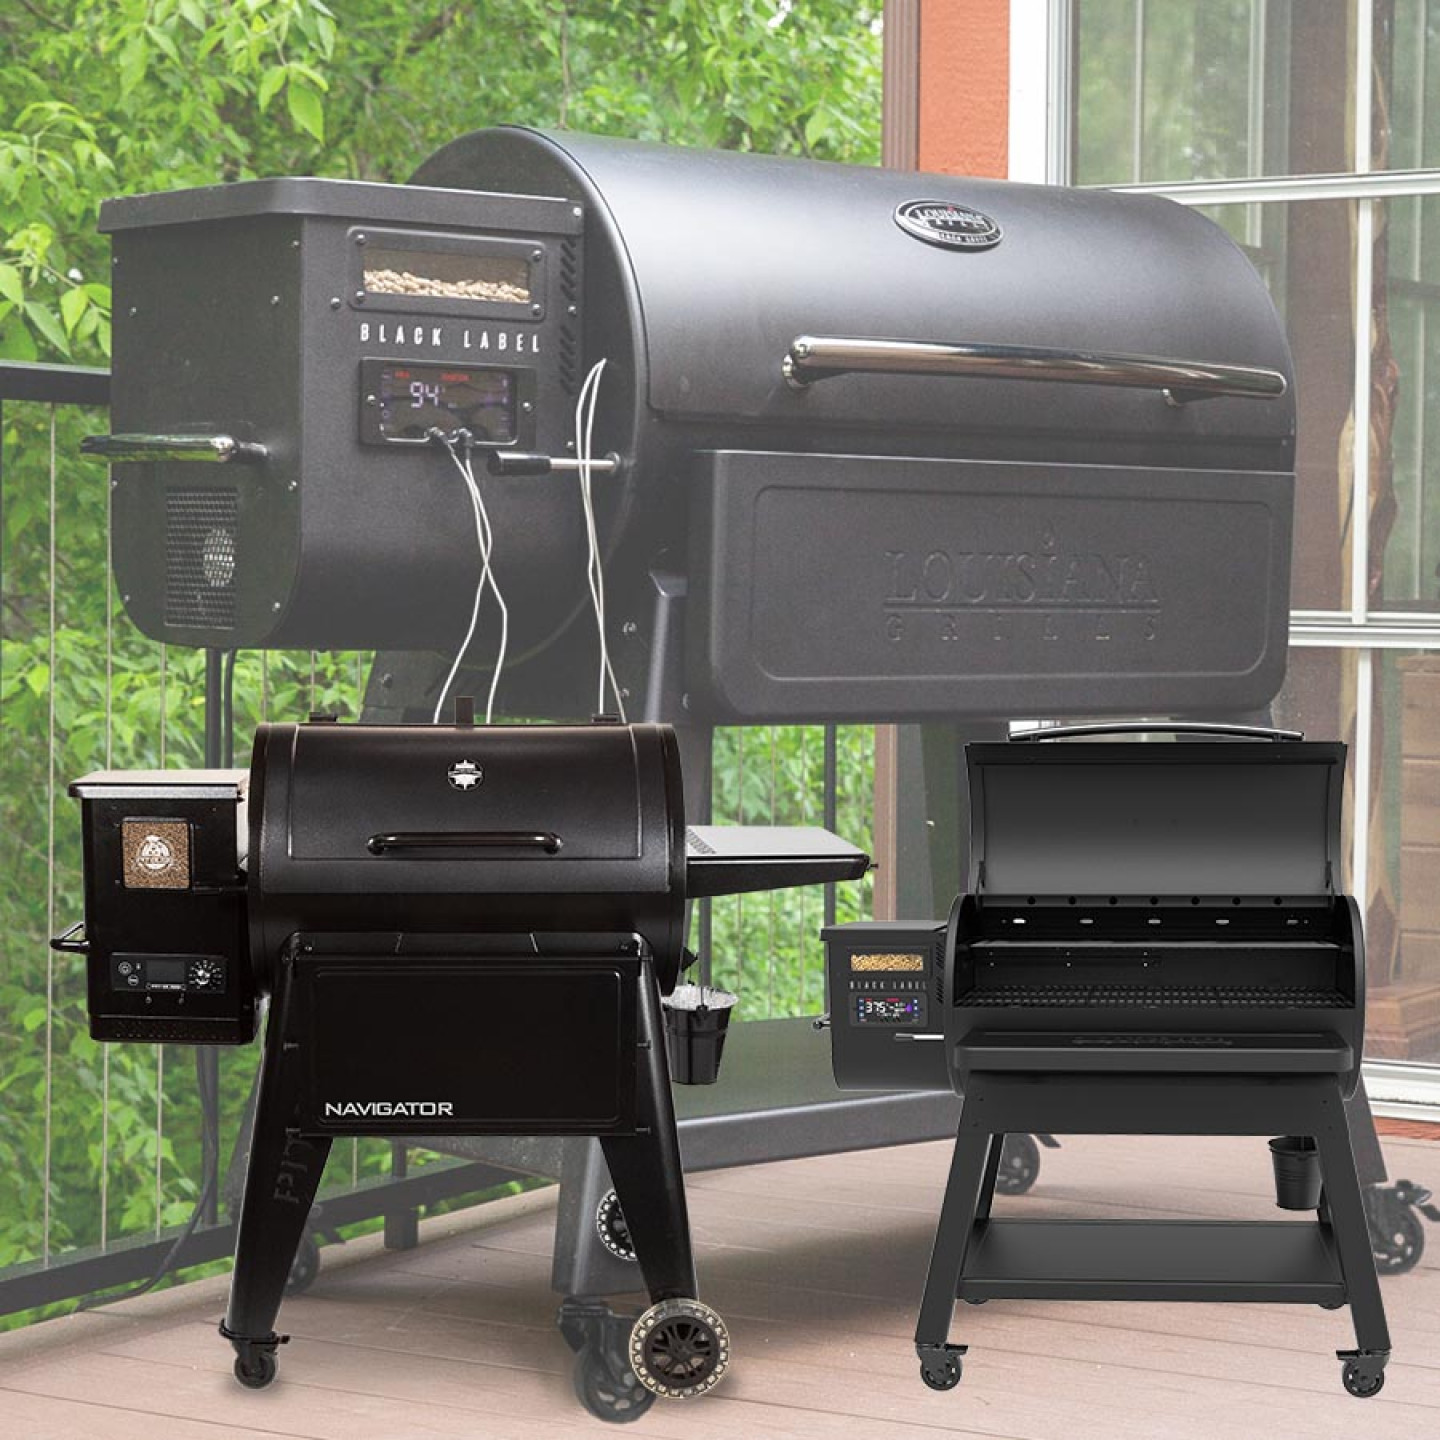 Louisiana Black Label wood pellet grills: